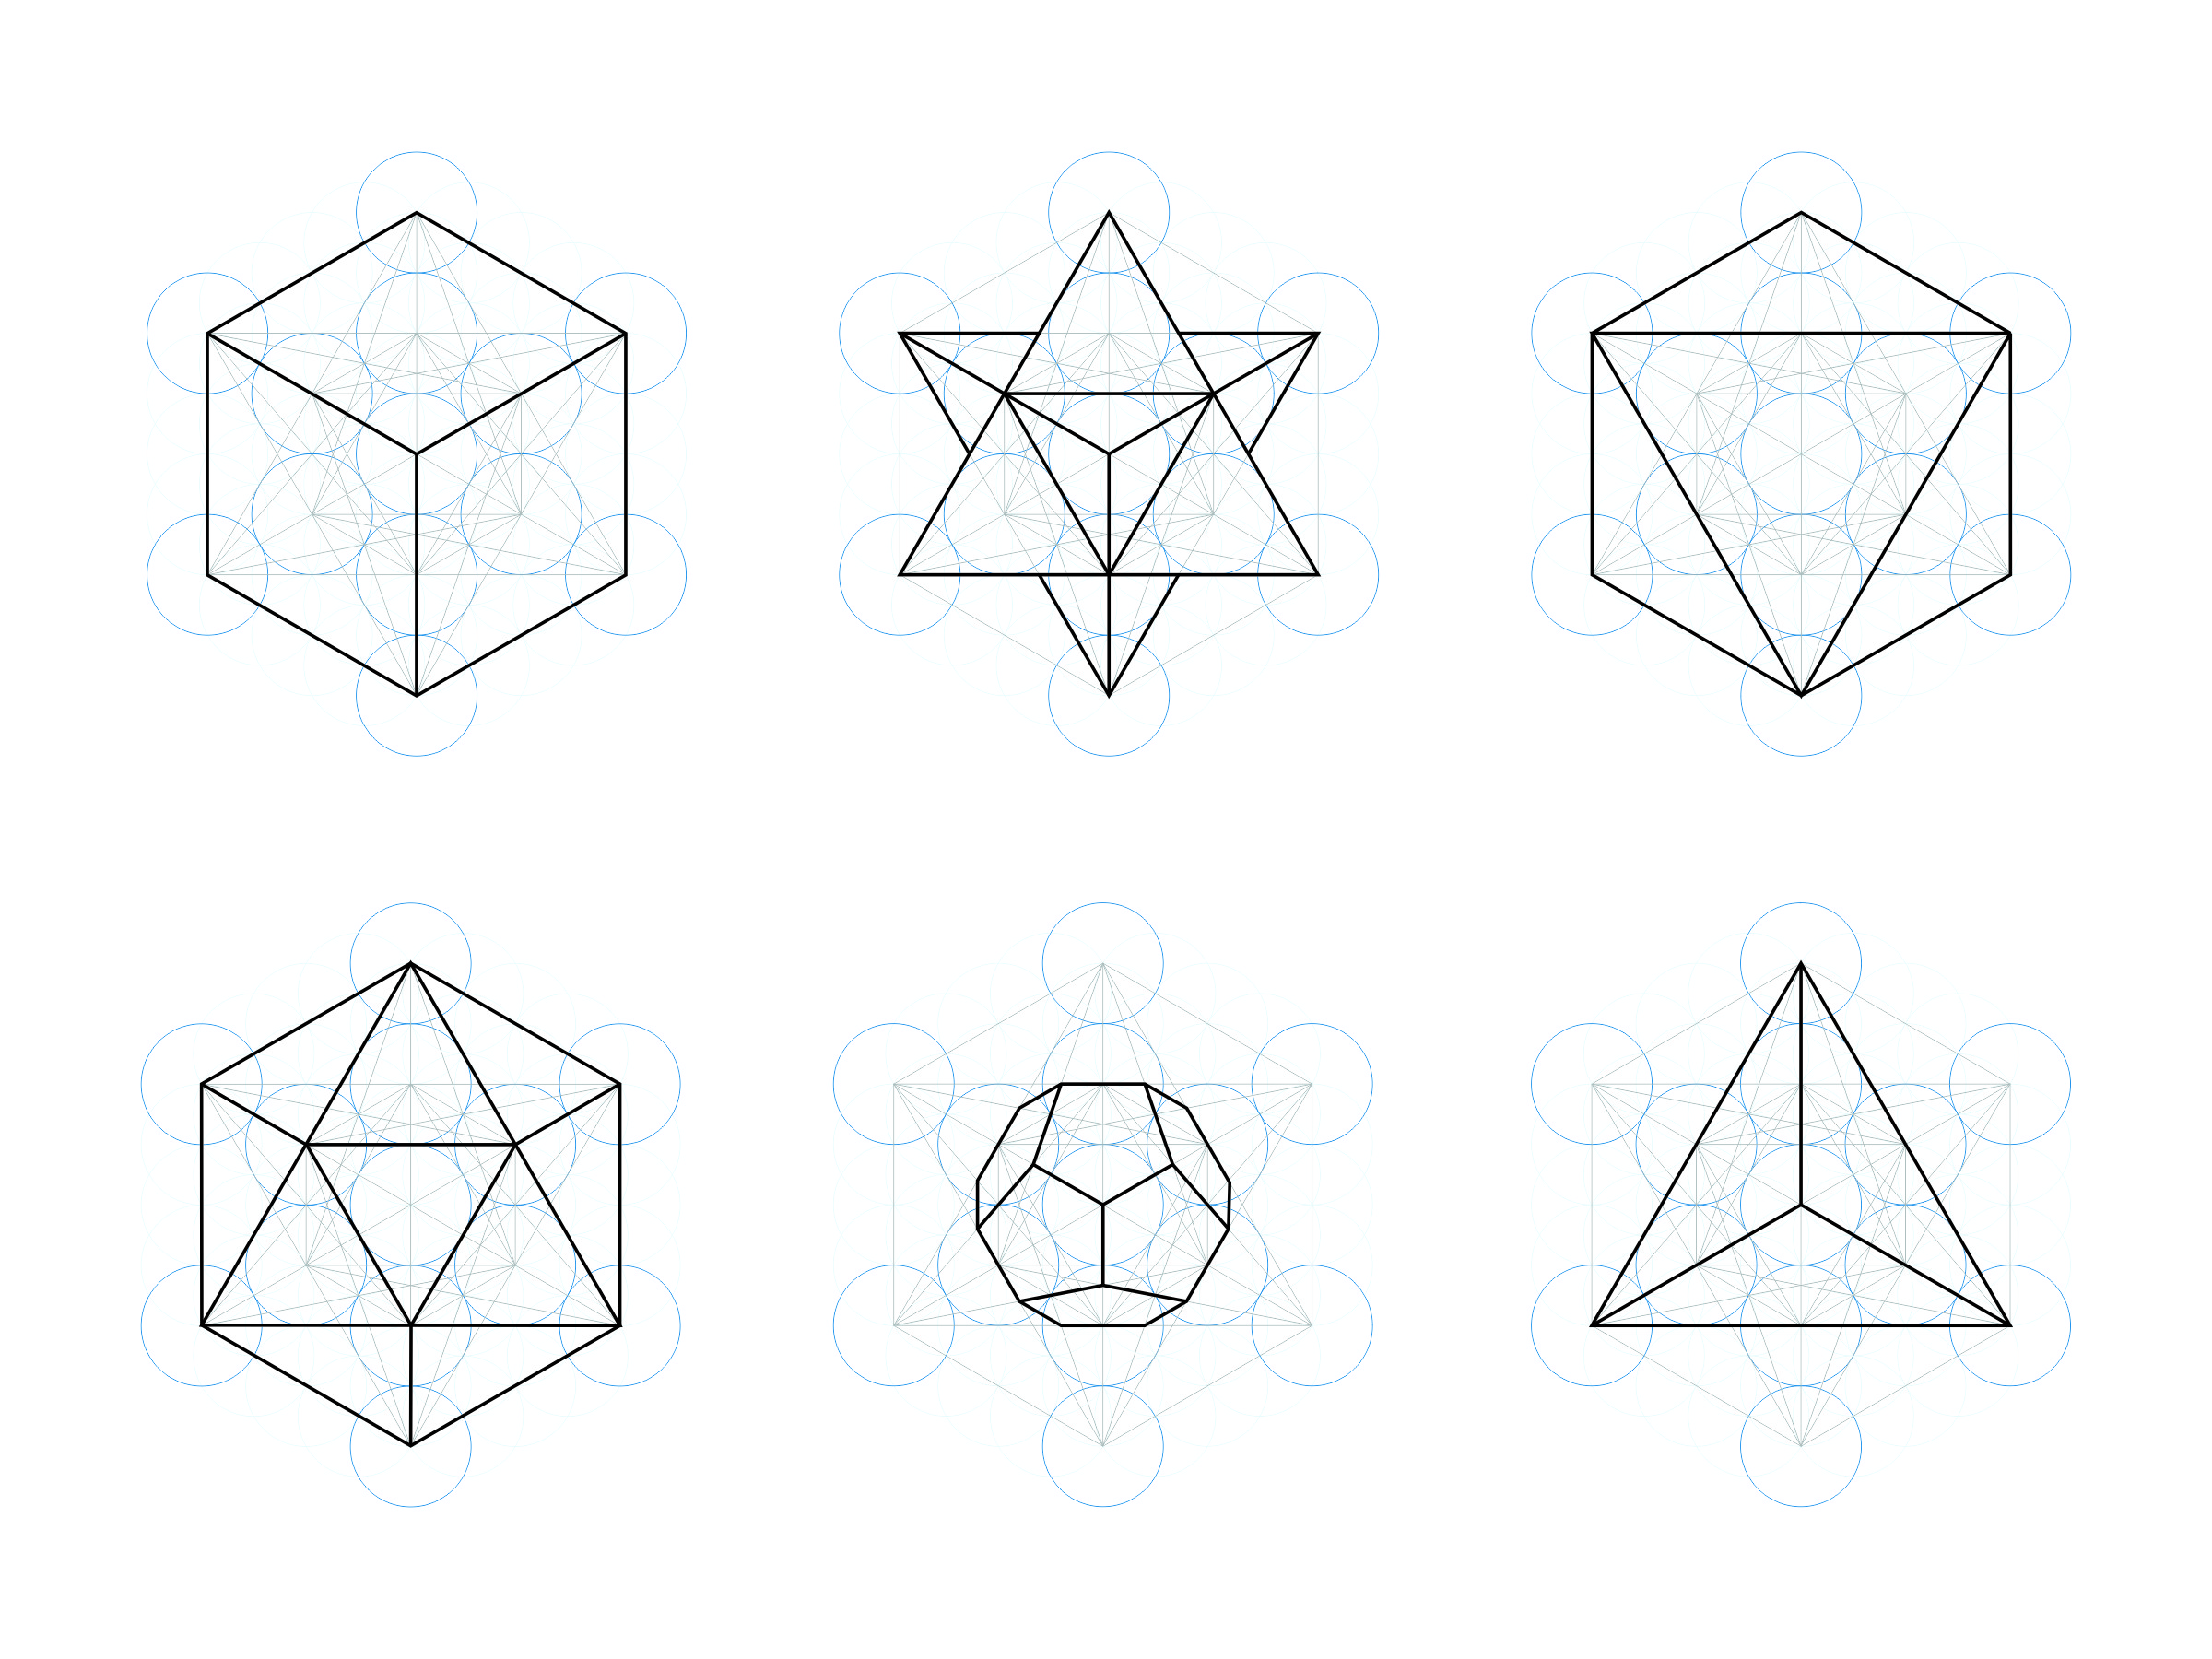 metatrons_cube_sketchblue